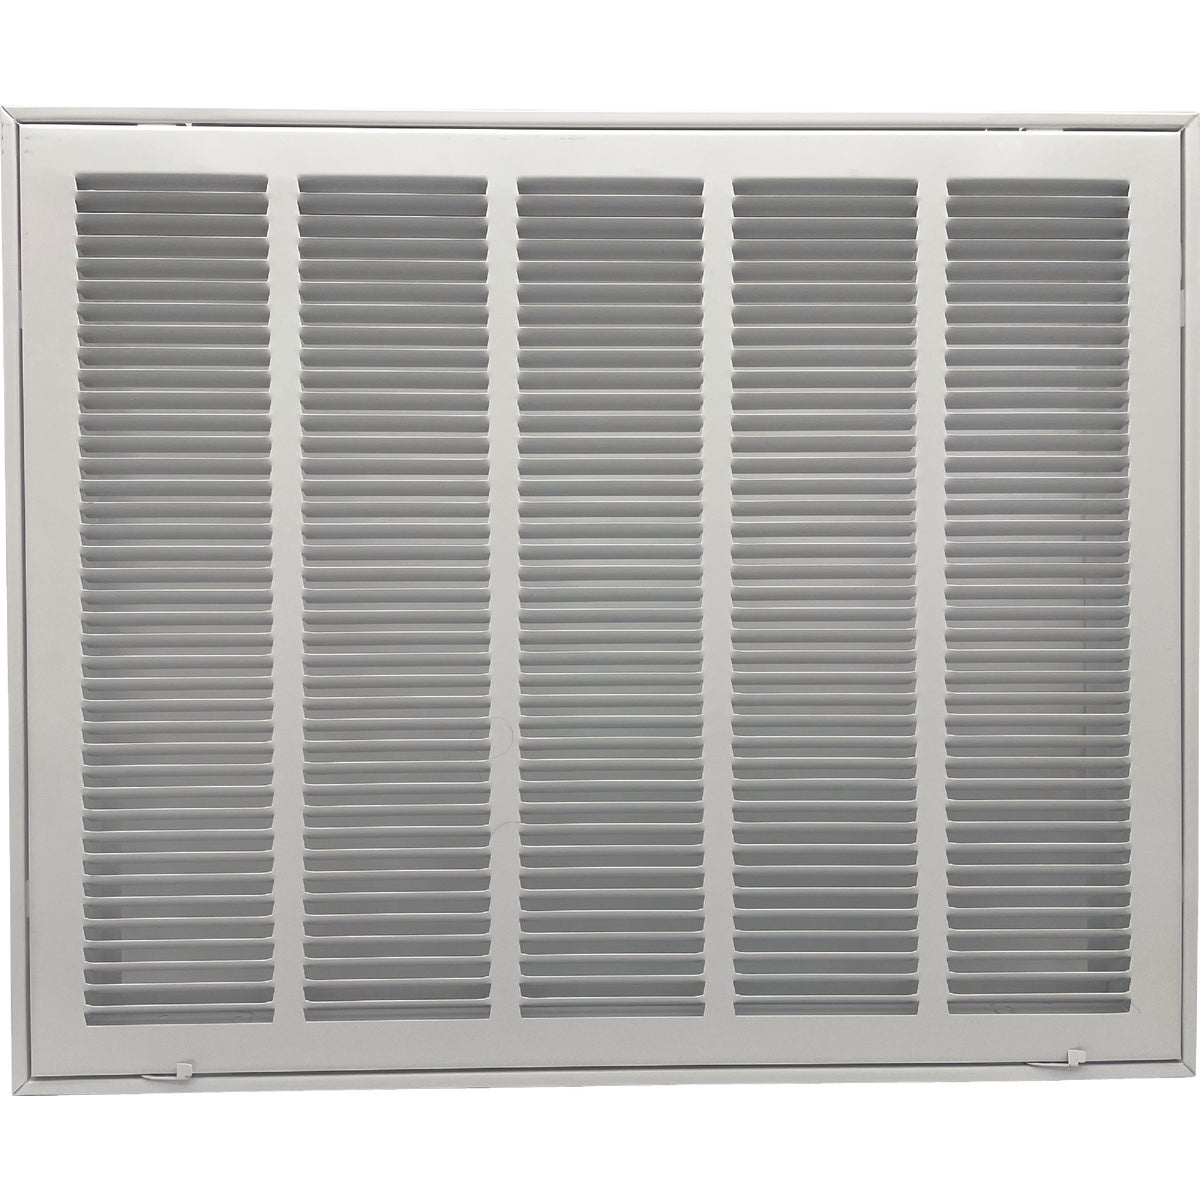 25X20 WH FILTER GRILLE